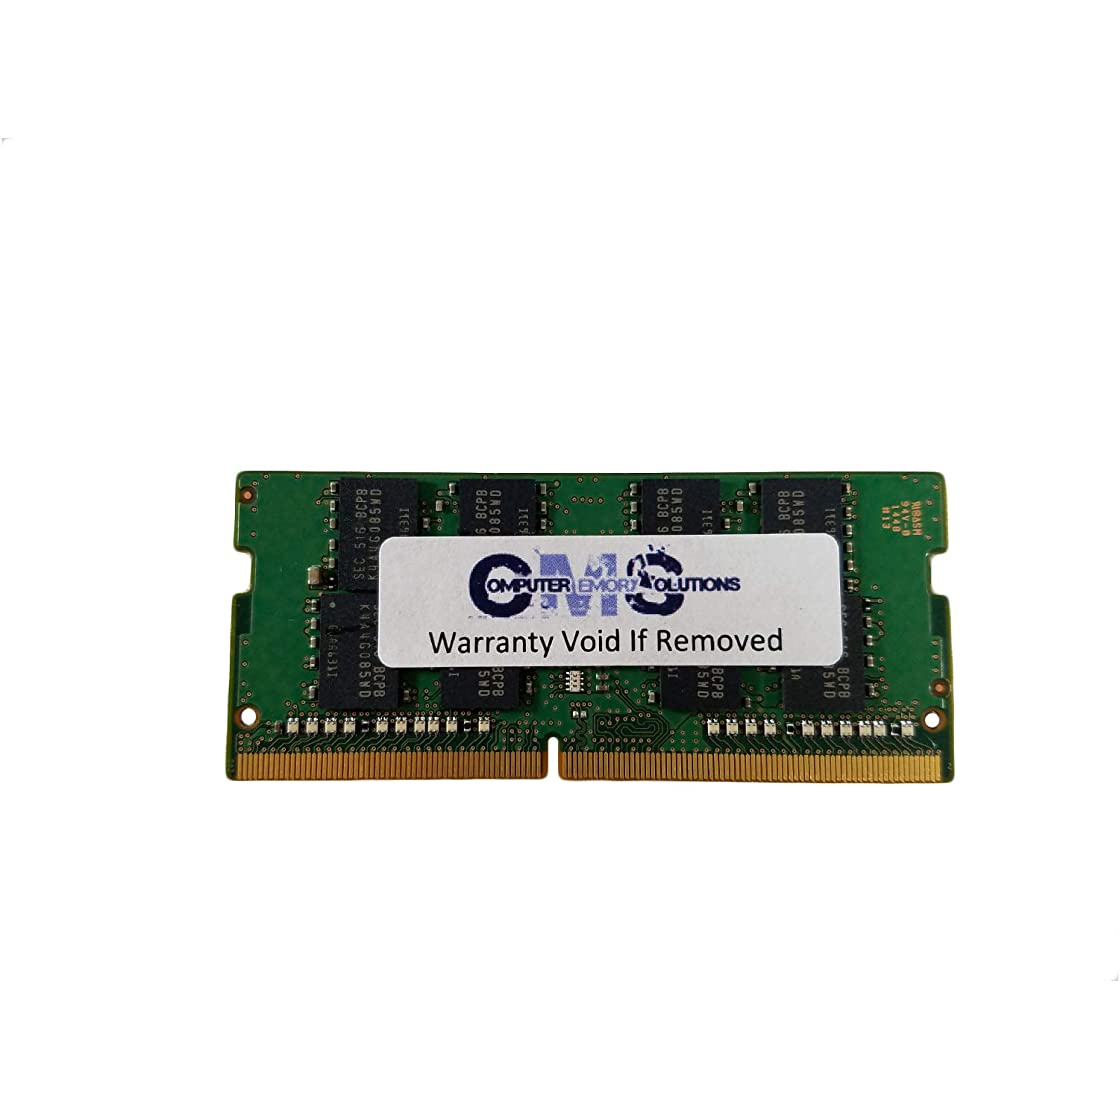 8GB (1x8GB) Memory RAM Compatible with HP EliteDesk 800 G4 Desktop Mini, EliteOne 800 G4 All-in-One by CMS D36